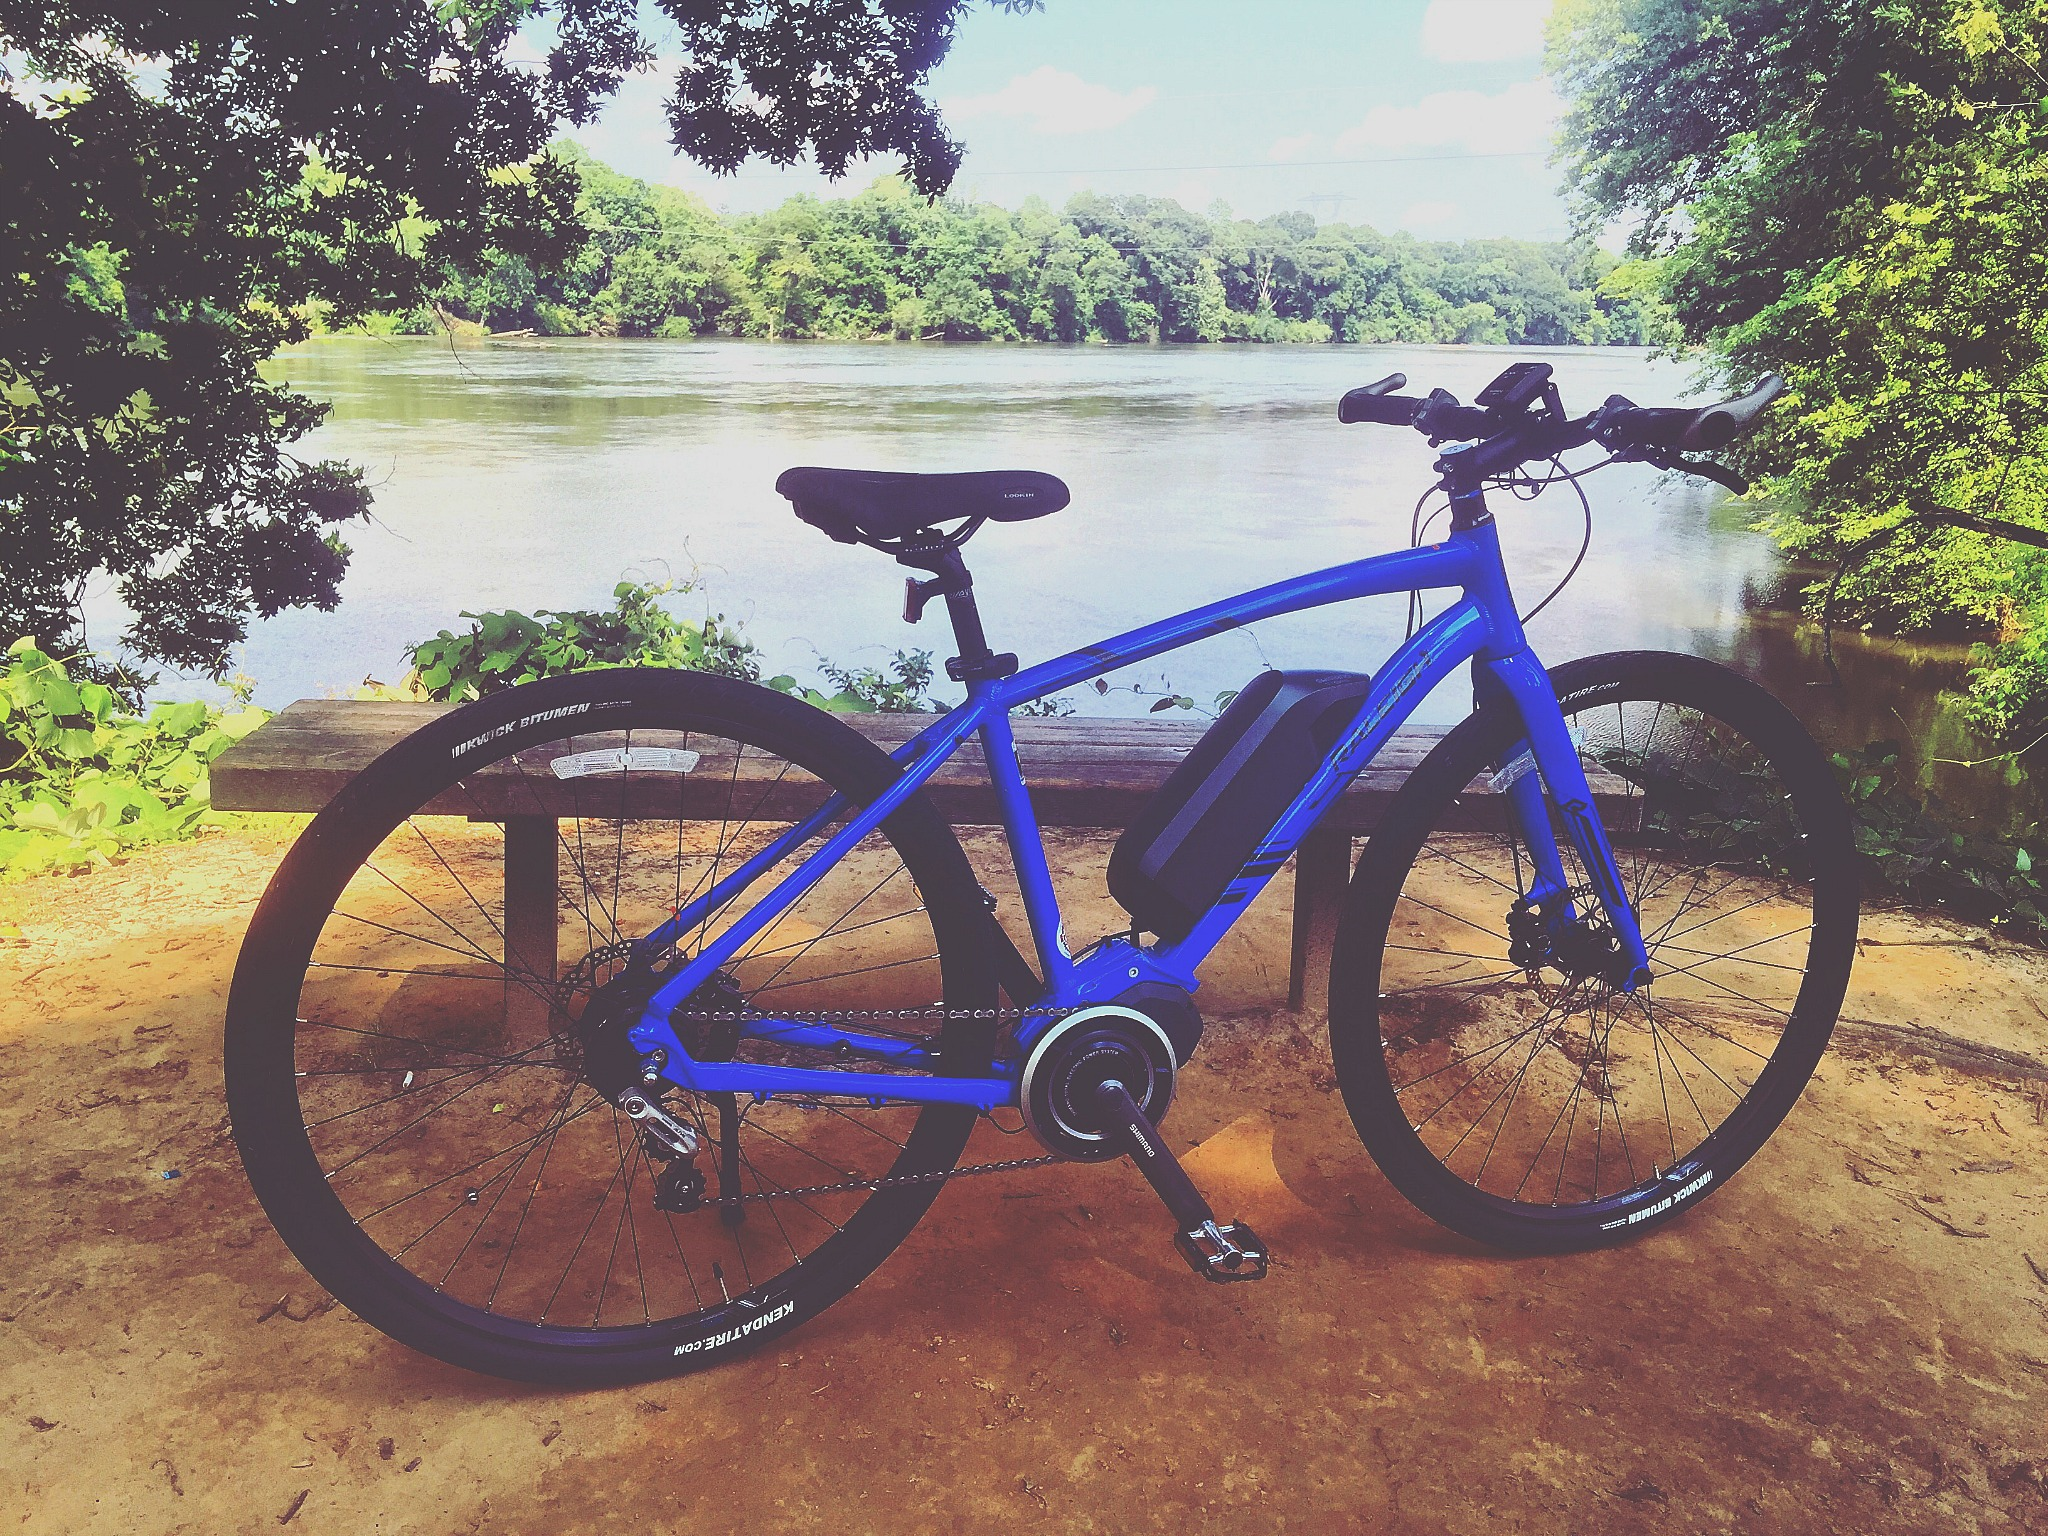 Biking Riverwalk Fort Mill SC, Catawba River